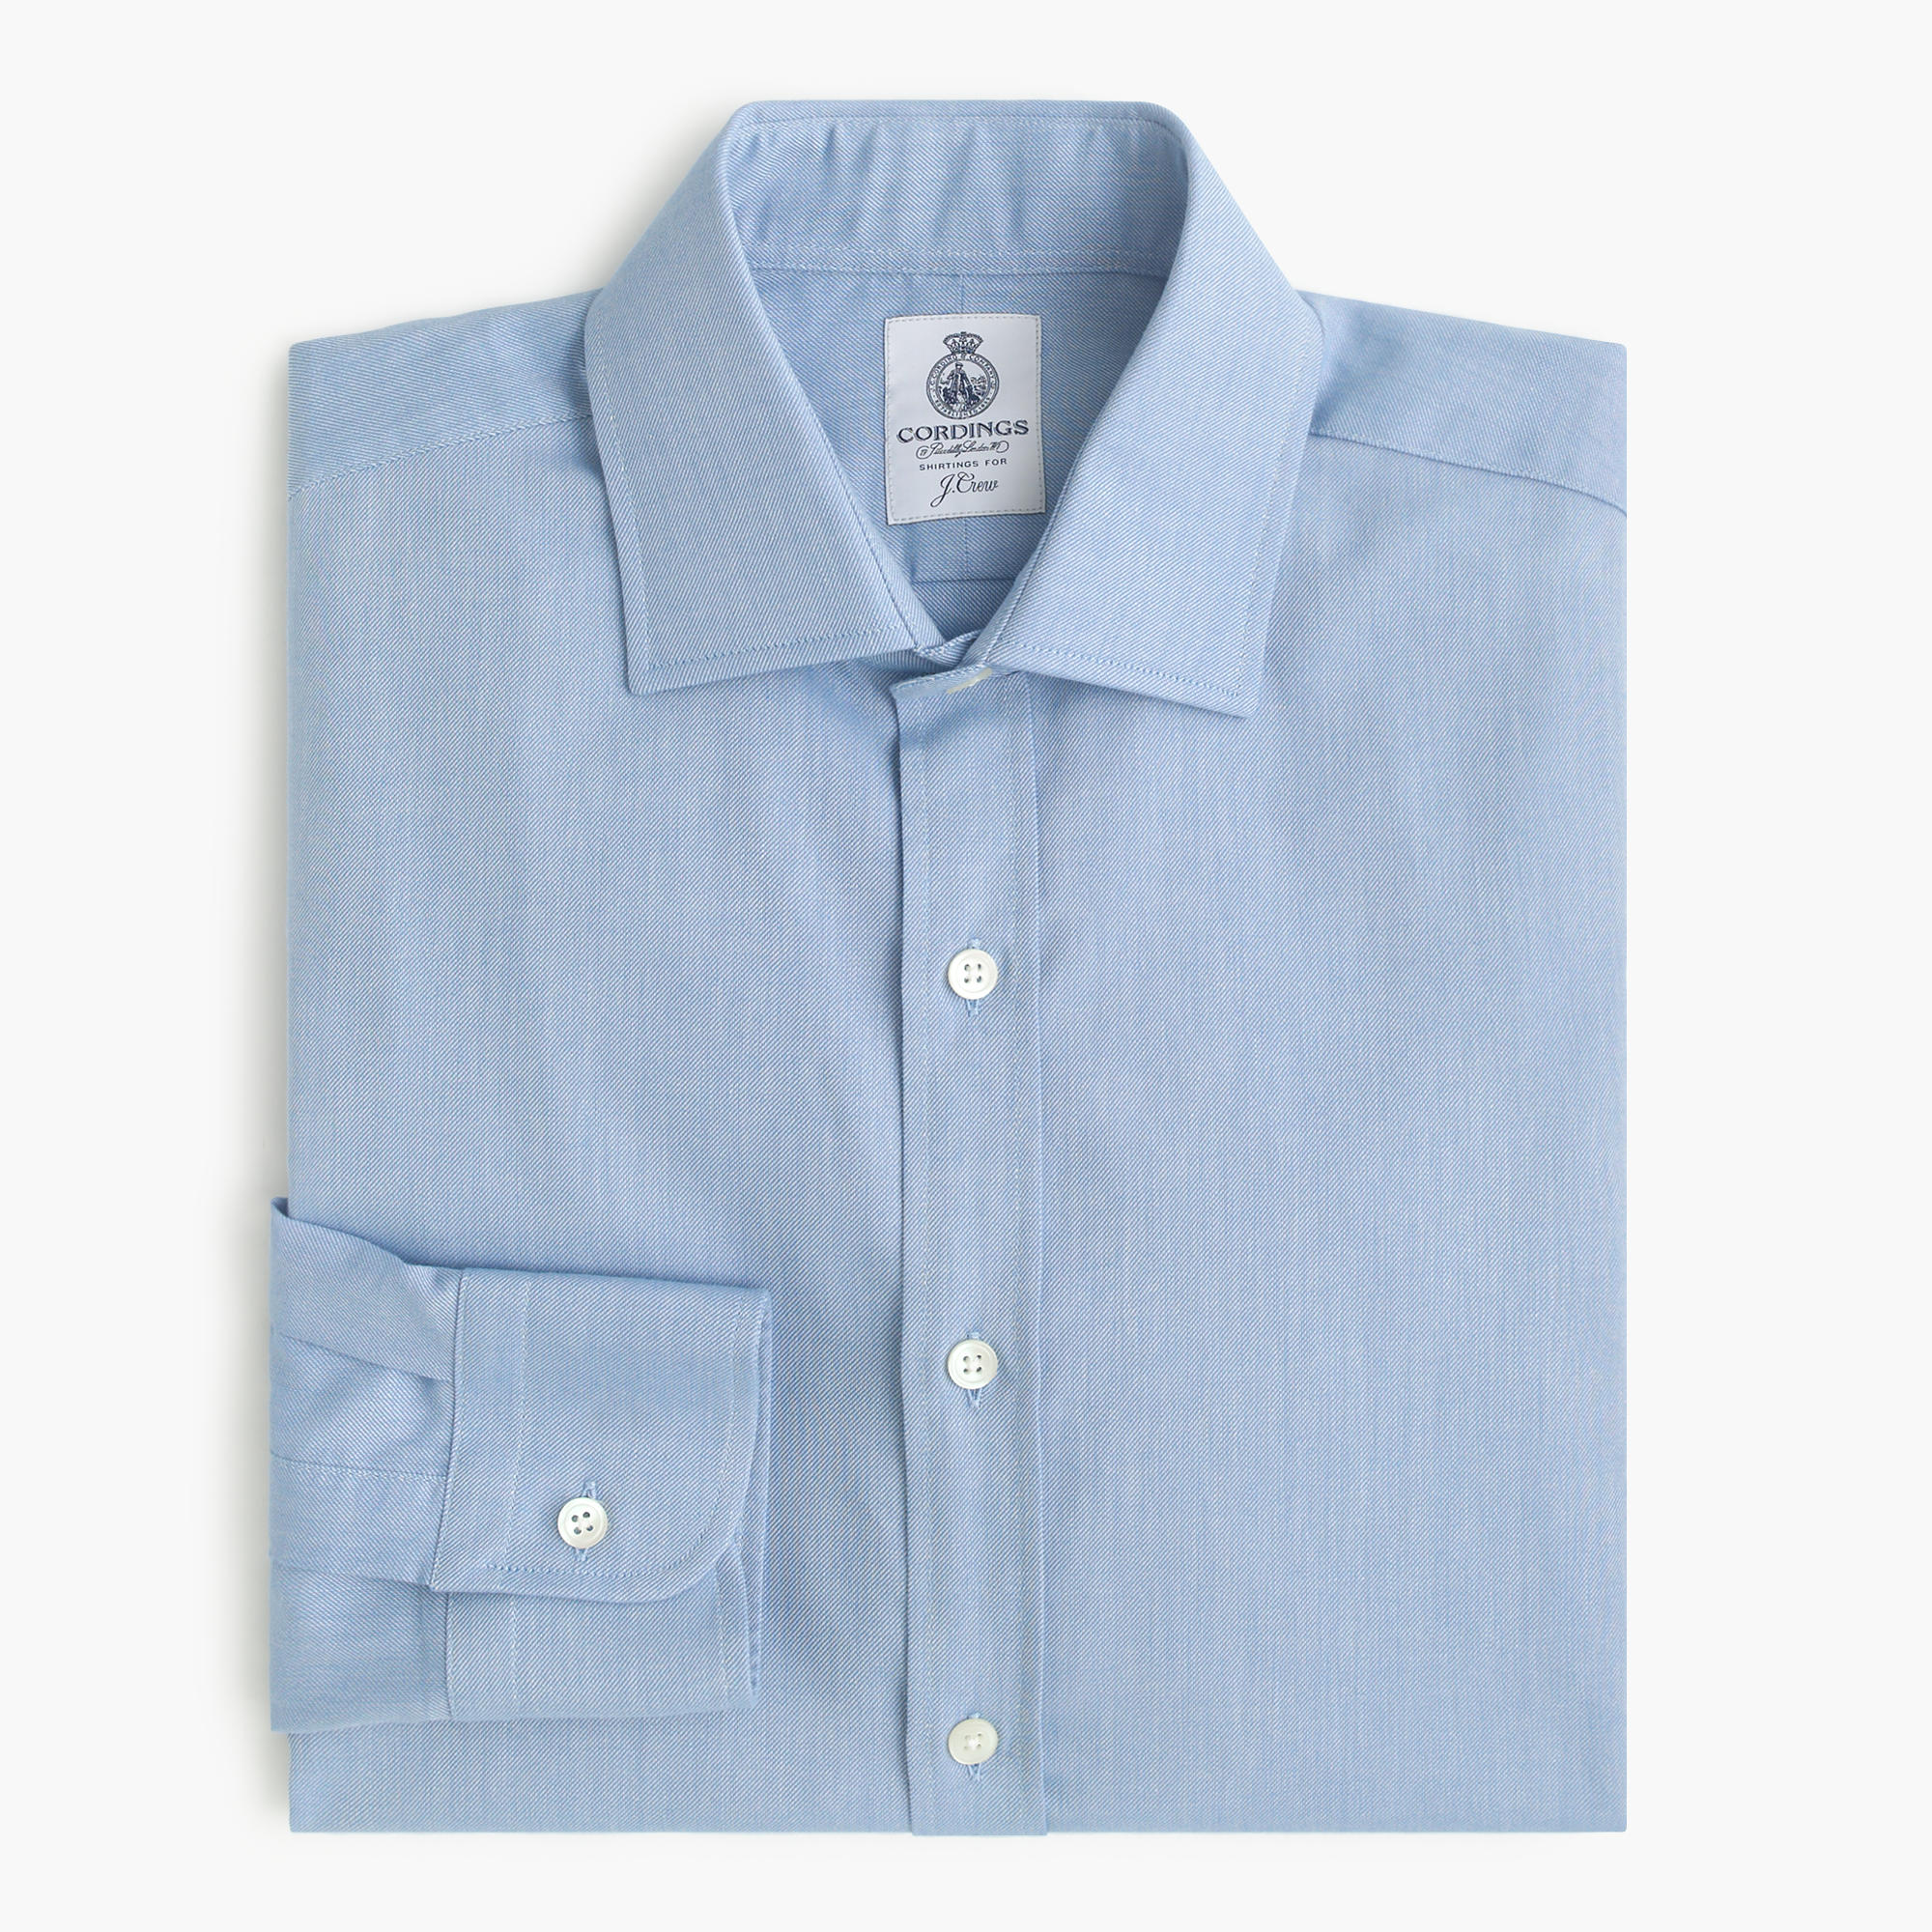 Cordings for j crew shirt in brushed twill j crew for Brushed cotton twill shirt